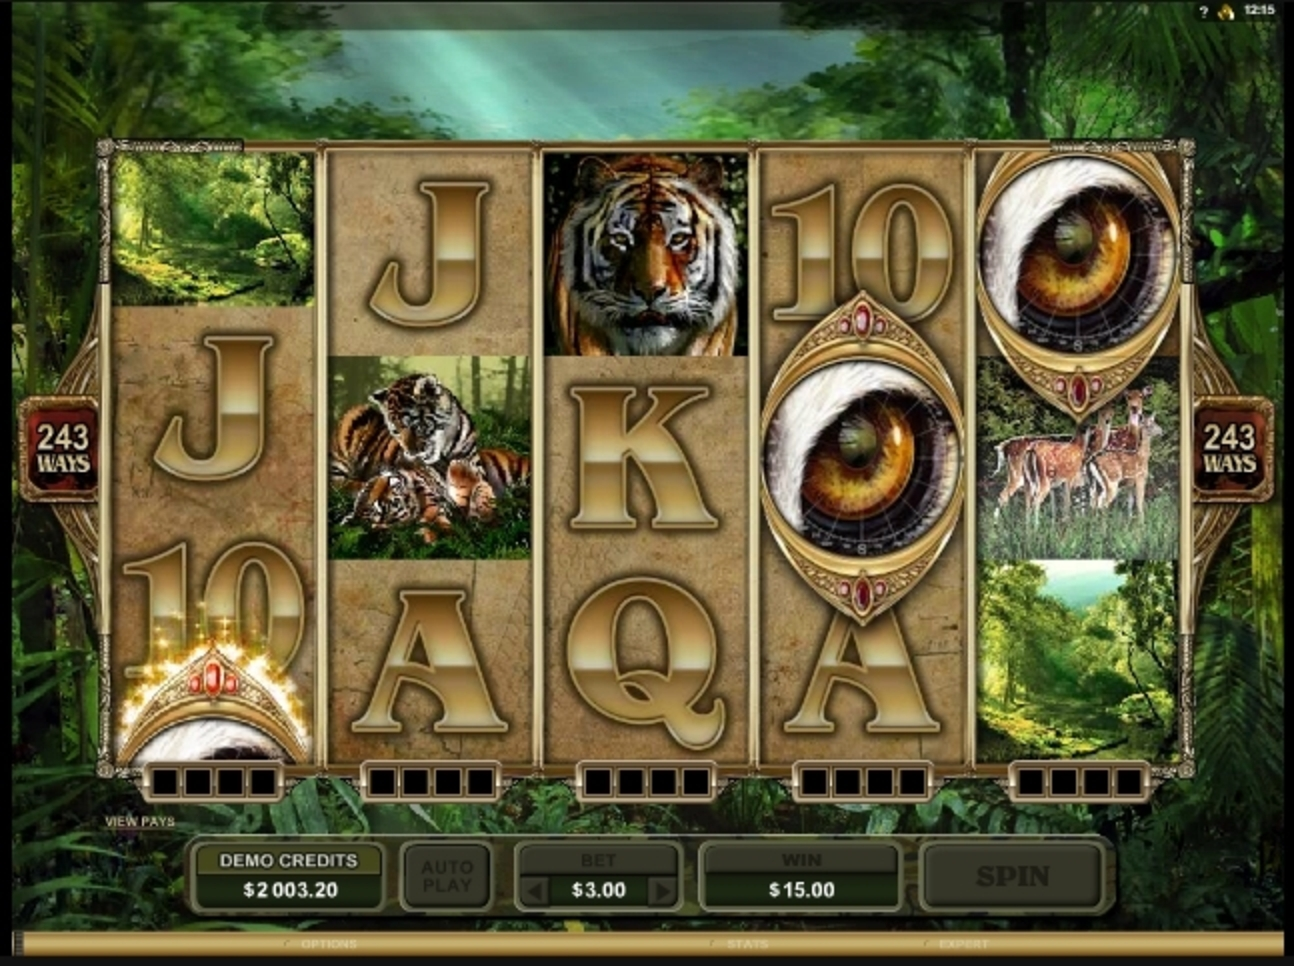 Win Money in Untamed Bengal Tiger Free Slot Game by Microgaming